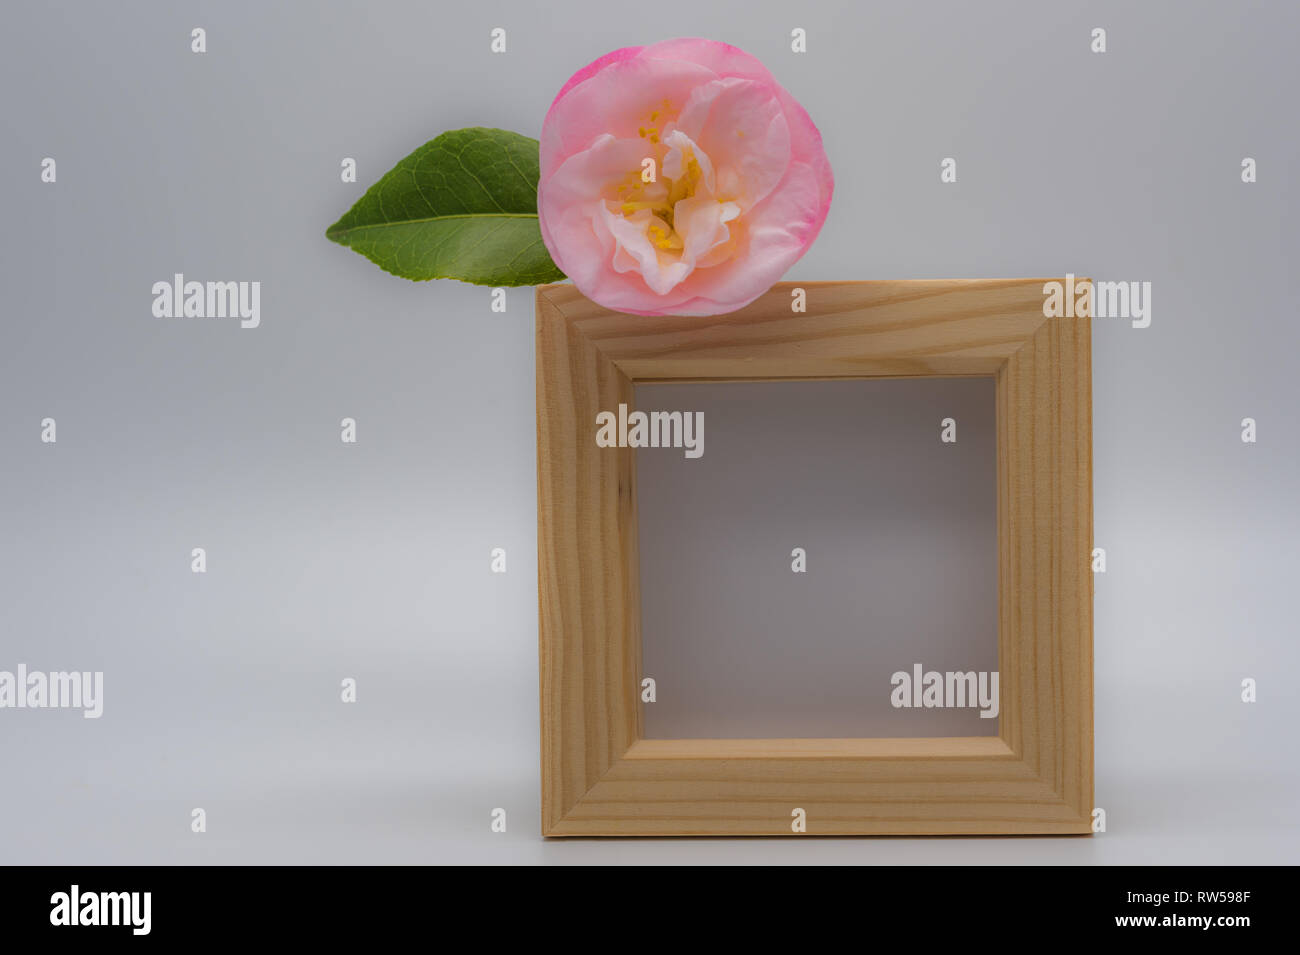 Square wooden frame mockup with a single pink flower with a green leaf placed upon top corner of photo frame. - Stock Image